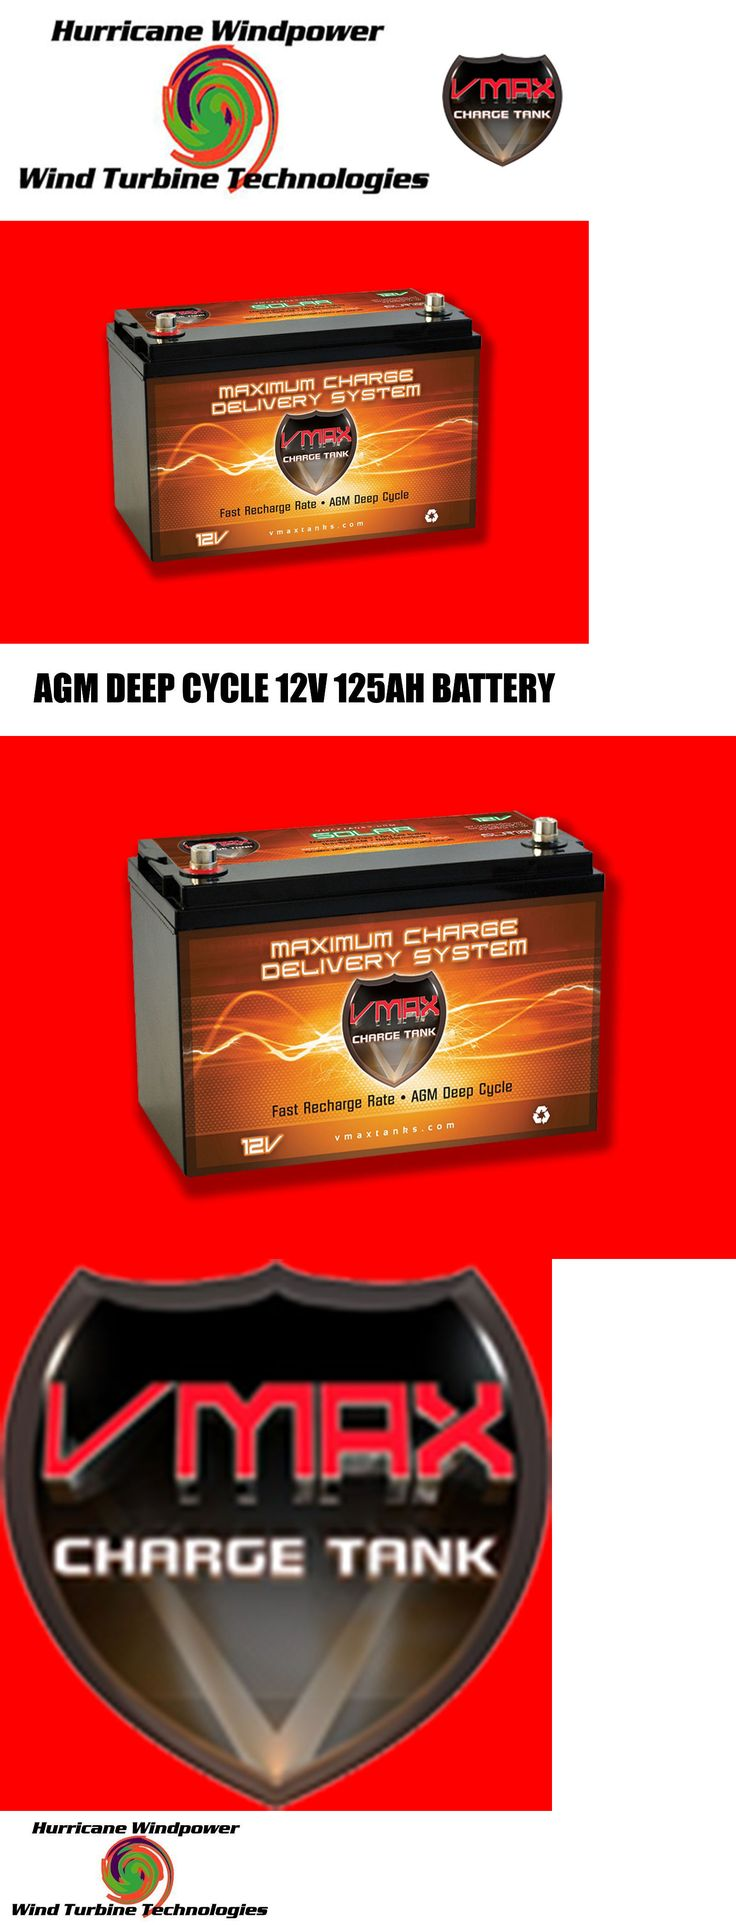 Solar Panels 41981: Slr125 Vmax Agm Deep Cycle 12V 125Ah Battery For Synthesis Renogy Pv Solar Panel -> BUY IT NOW ONLY: $258.99 on eBay!